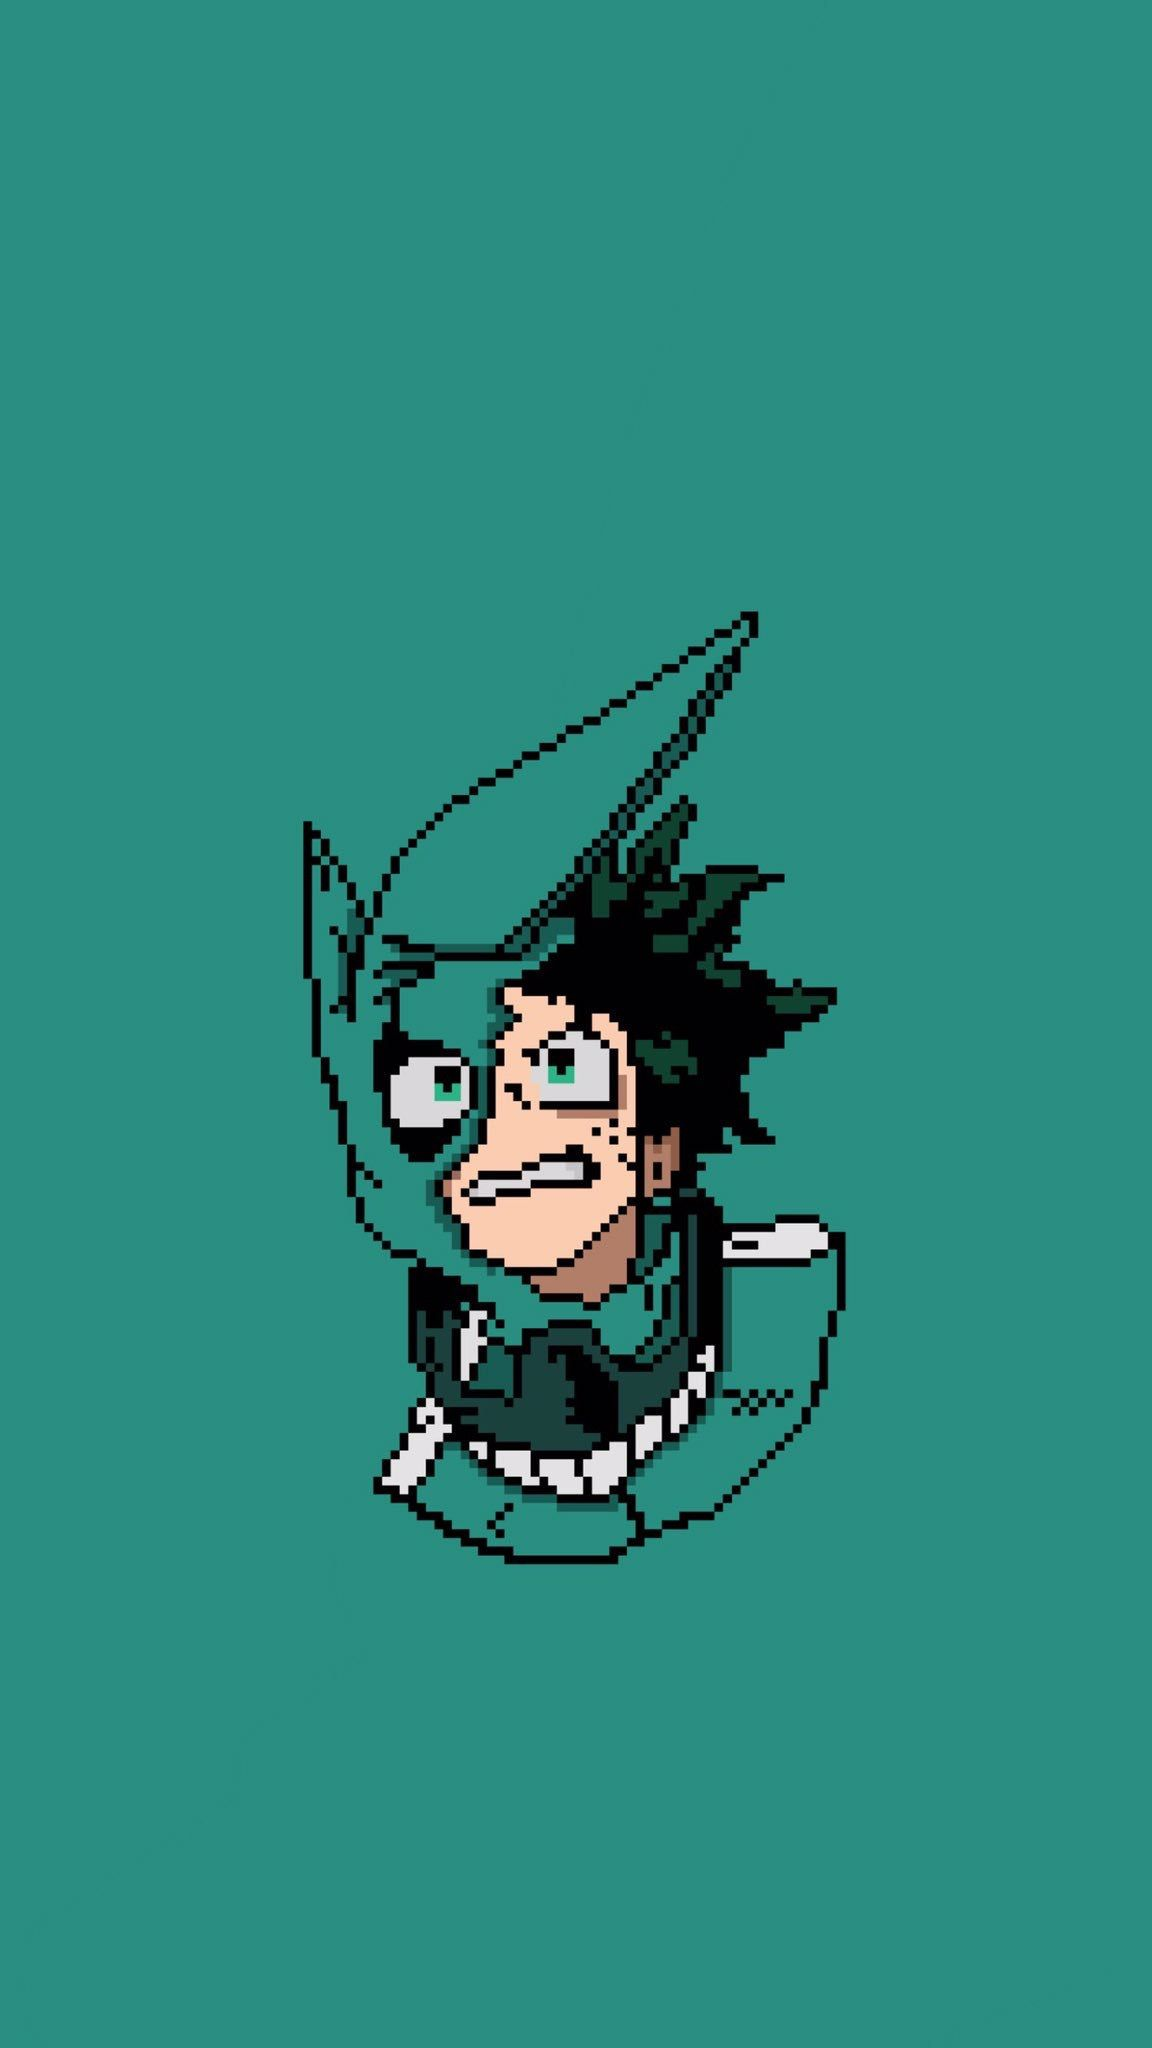 Bnha Lockscreen Midoriya Izuku Hero Wallpaper Hero Anime Wallpaper